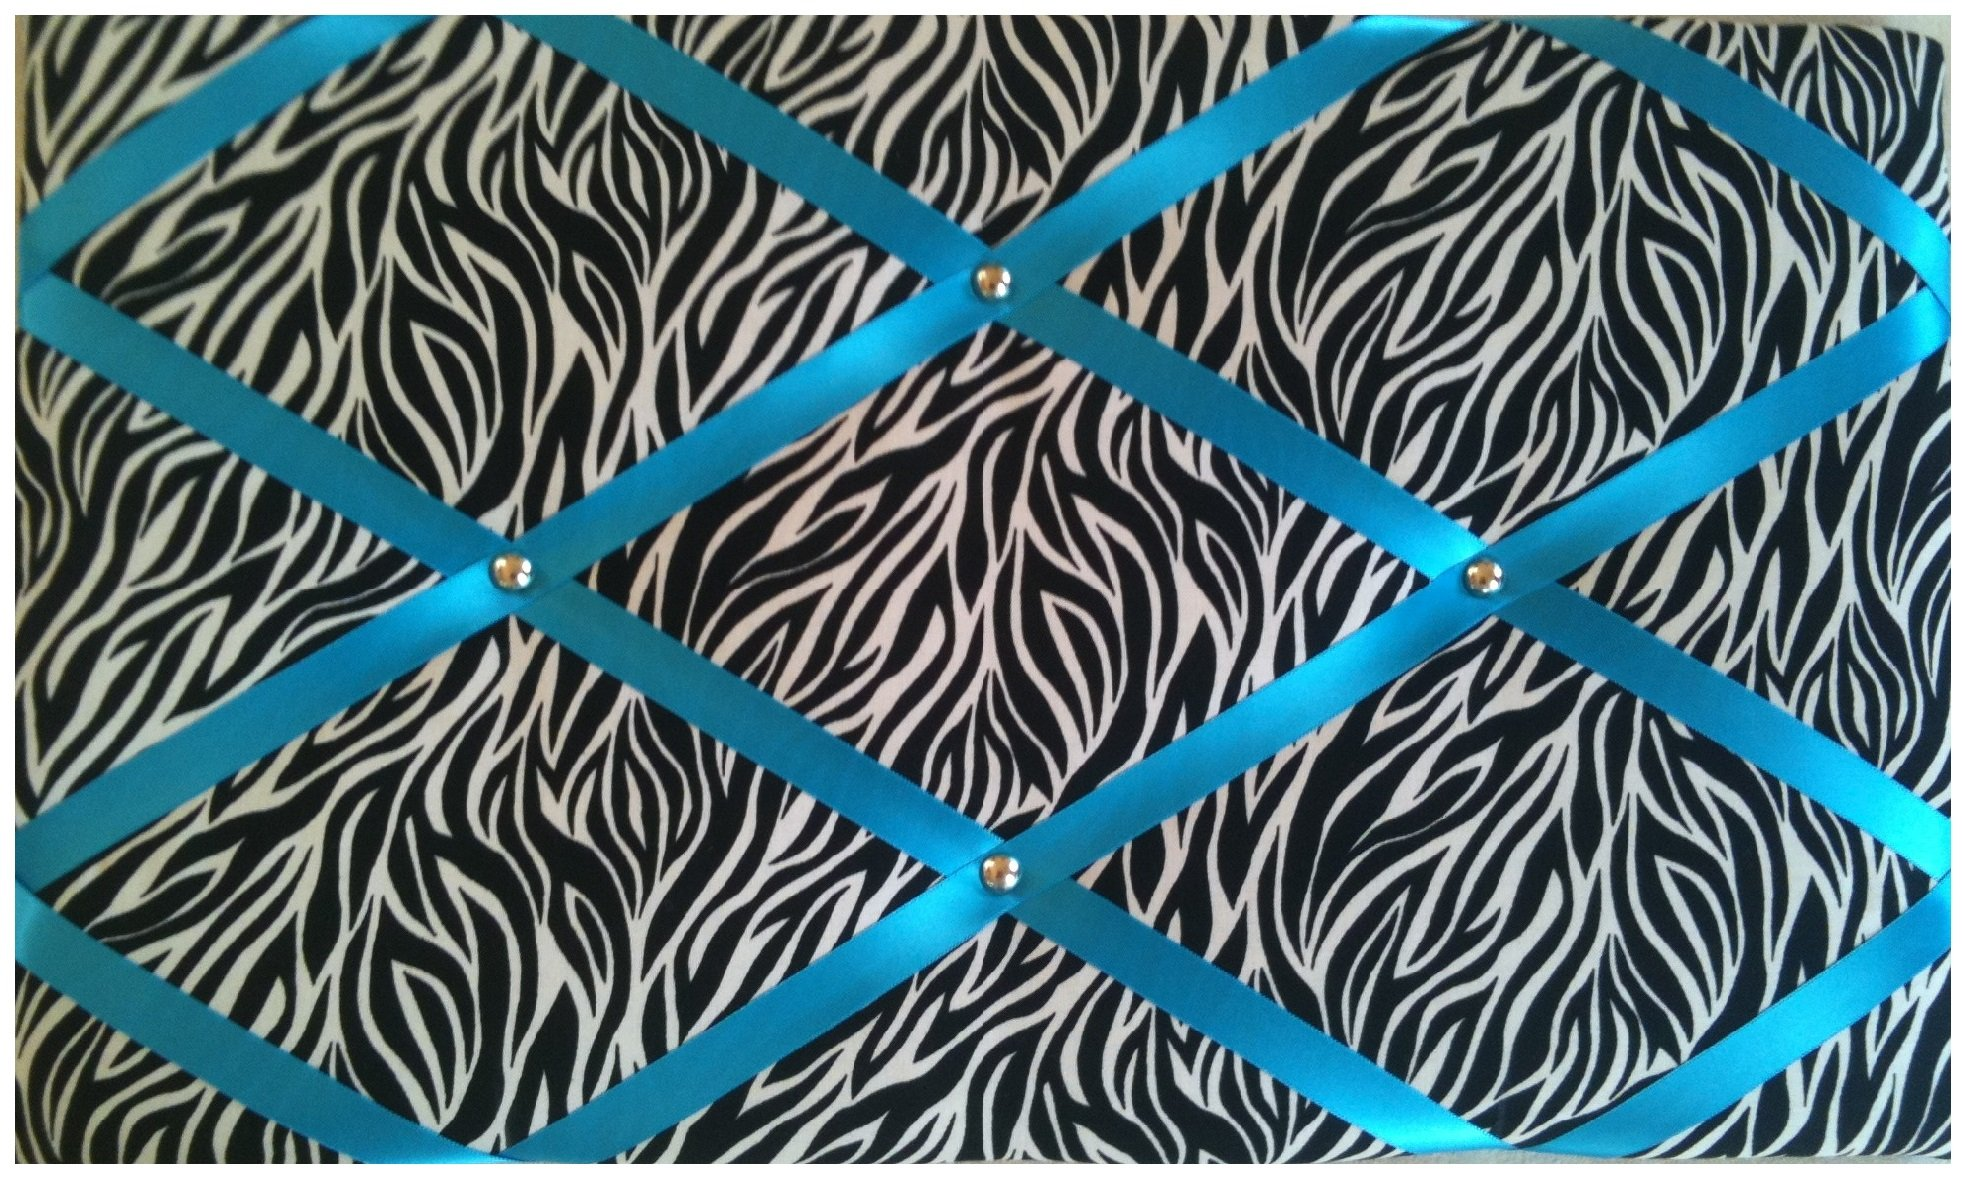 Message Boards/Notice Boards''Zebra Animal Print with Turquoise Ribbons'' by Notice Board Store